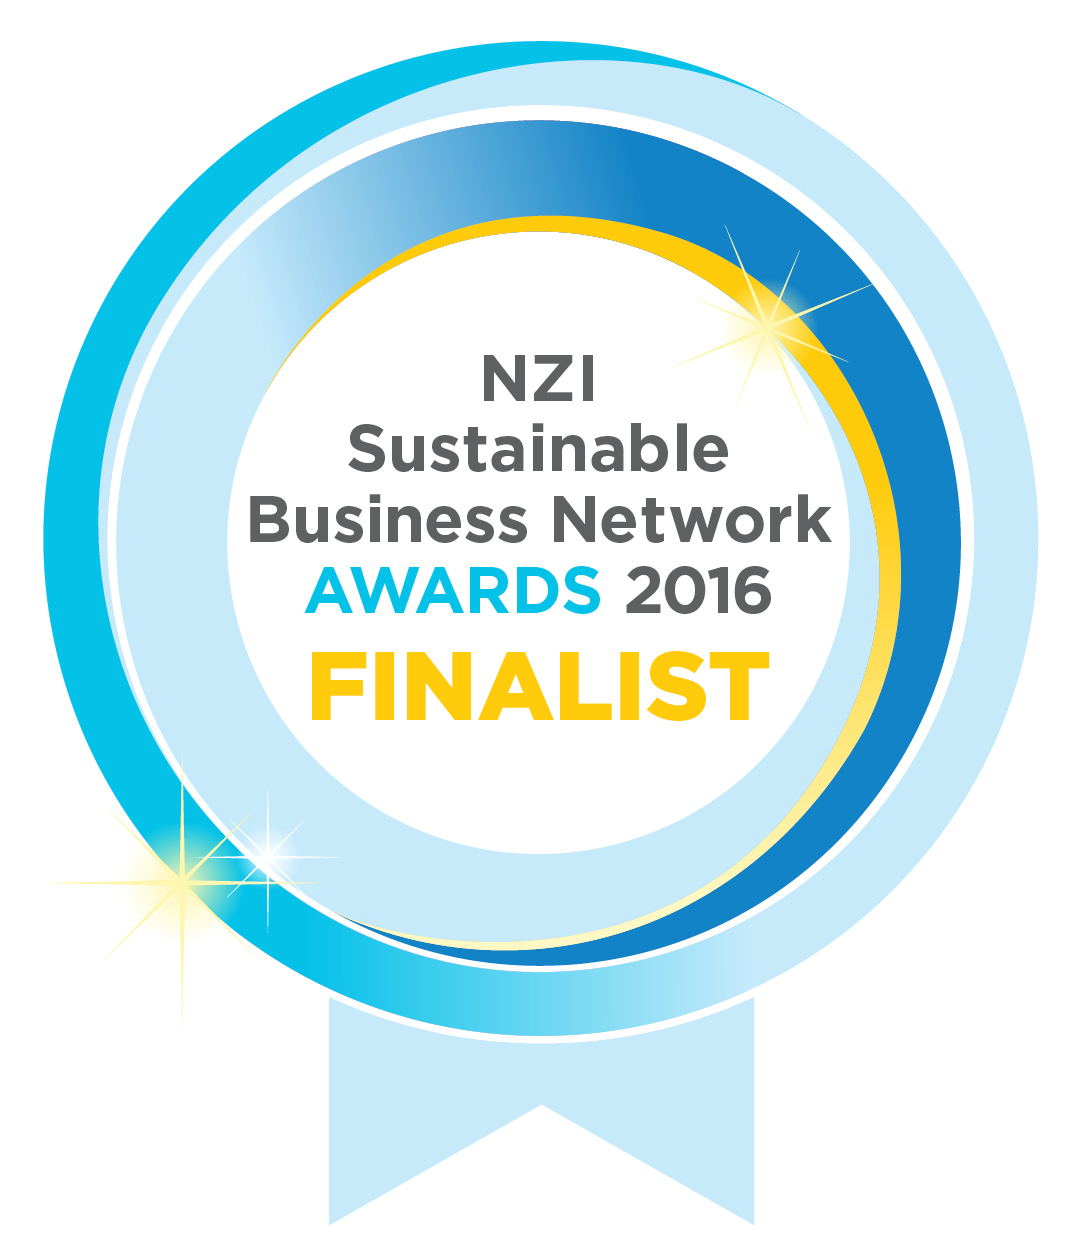 NZI Sustainable Business Network AWARDS 2016 FINALIST